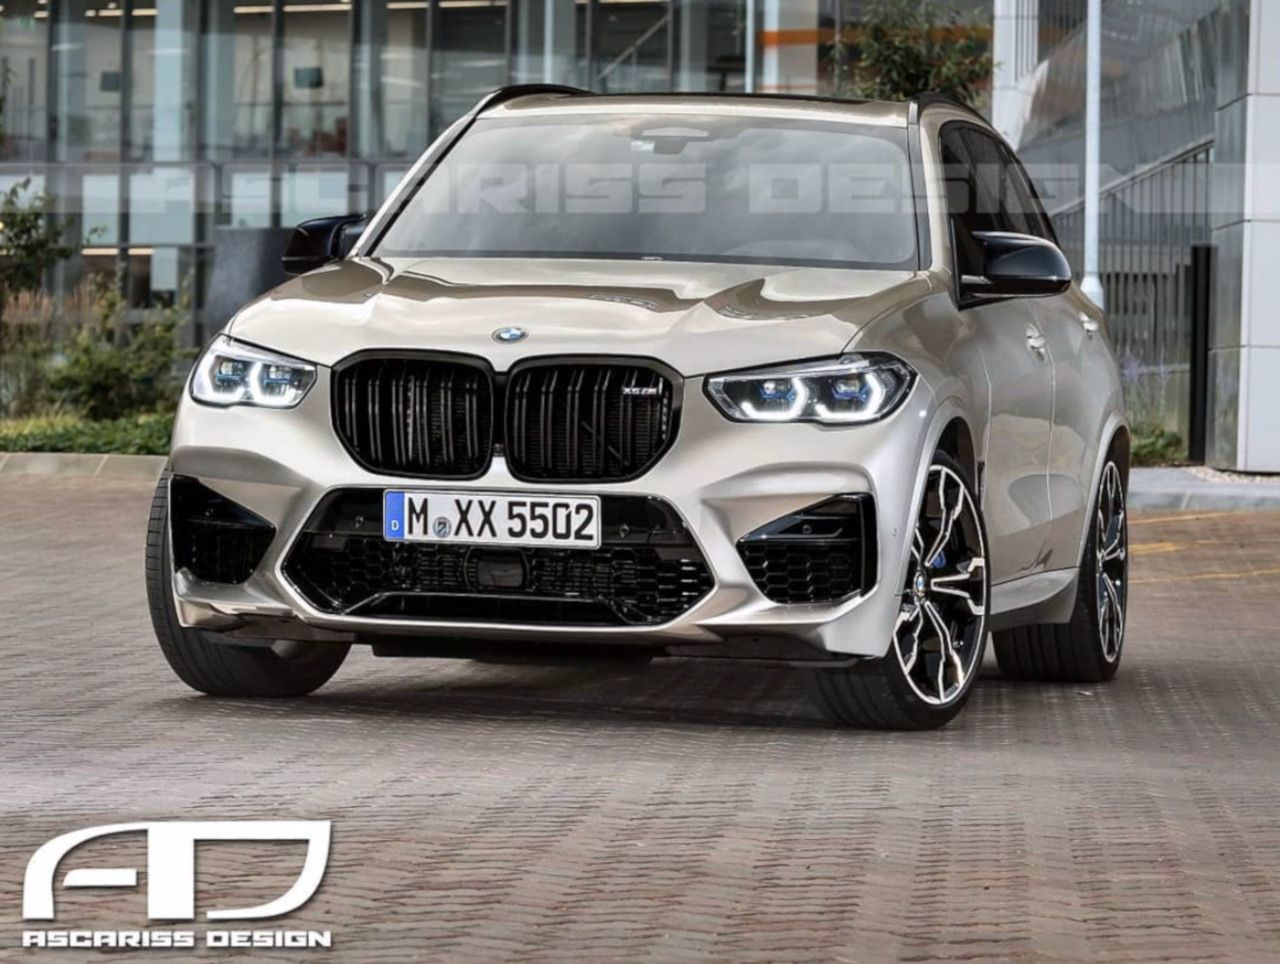 New Rendering Of The 2020 Bmw X5 M Bmw X5 M Bmw Bmw X5